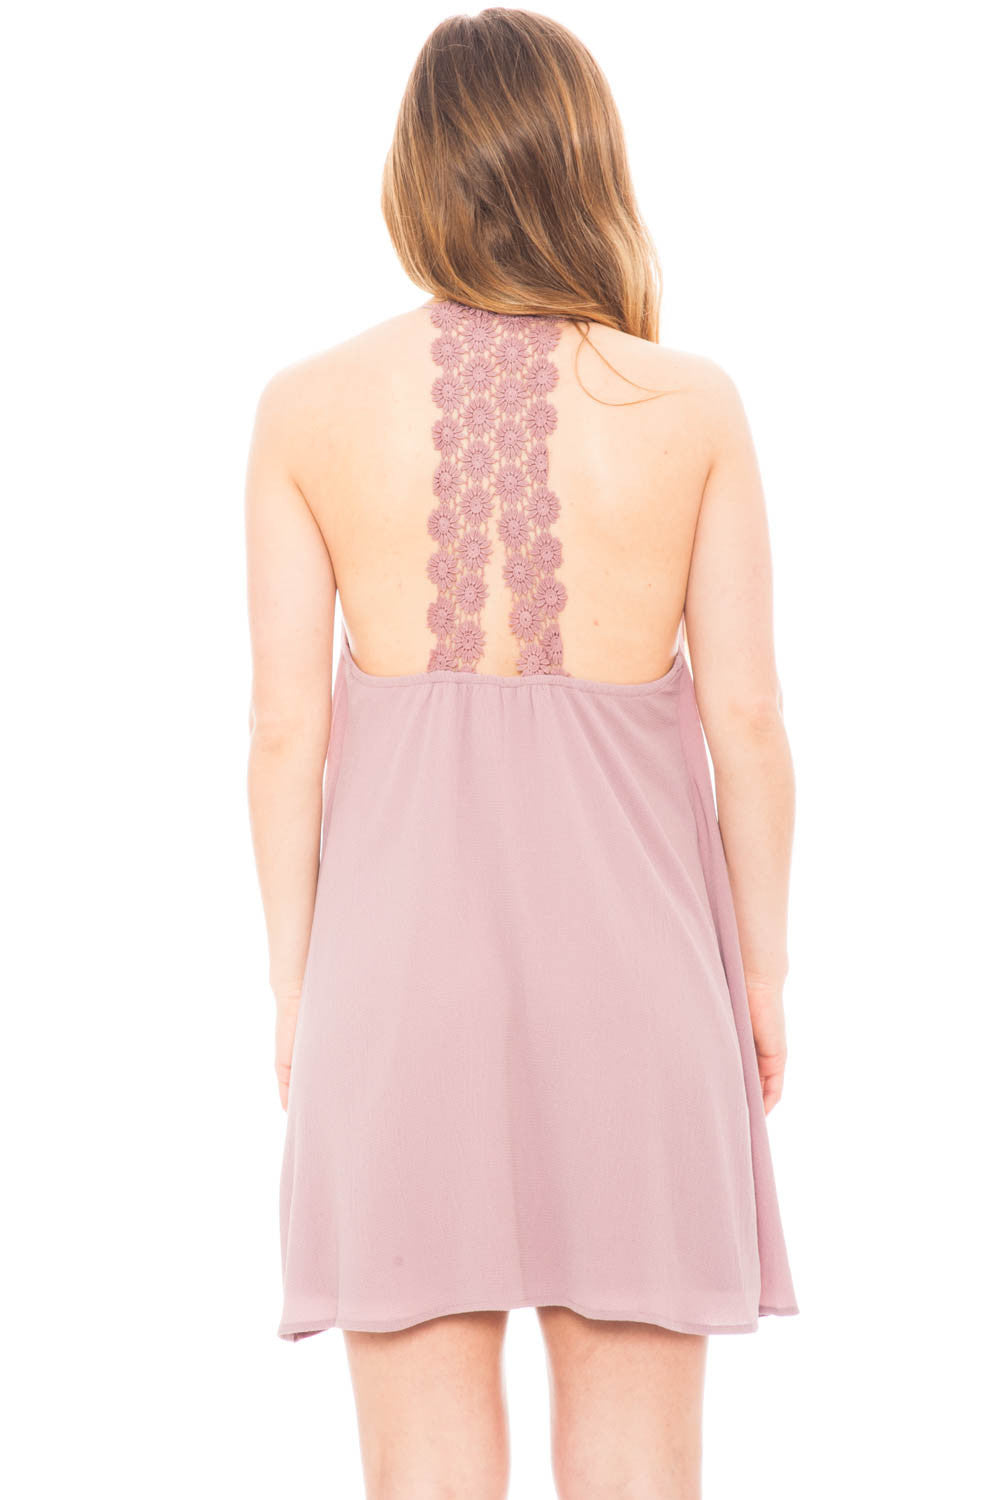 Dress - Chiffon Low Back Dress with Crochet Detail